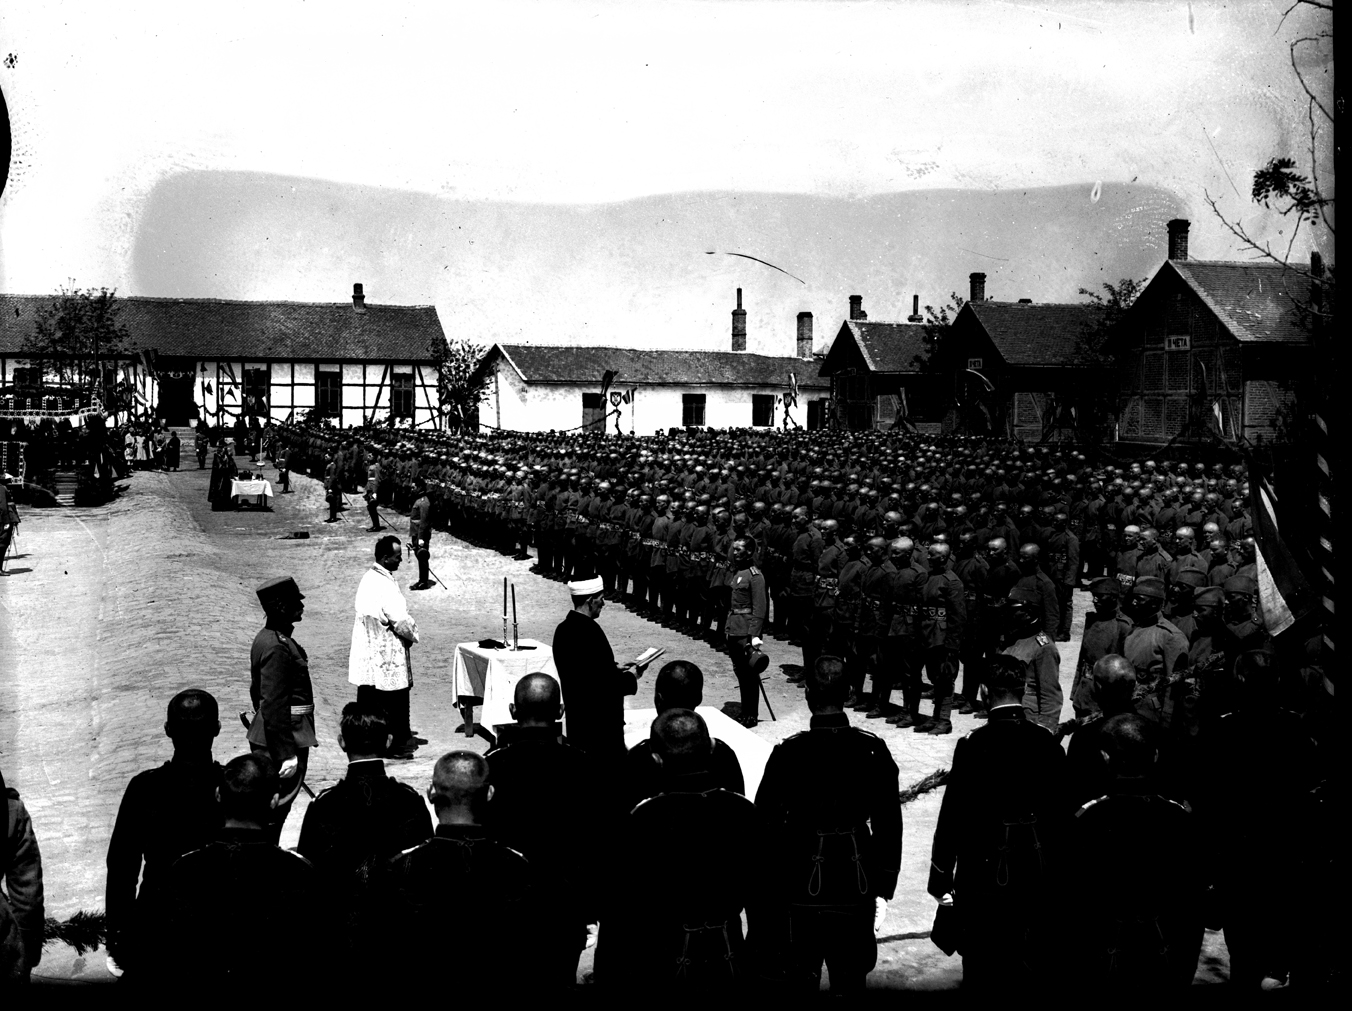 'Slava' ceremony for the 'Gvozdeni Puk' Second Infantry Division, 1930, © Photoarchive Borba